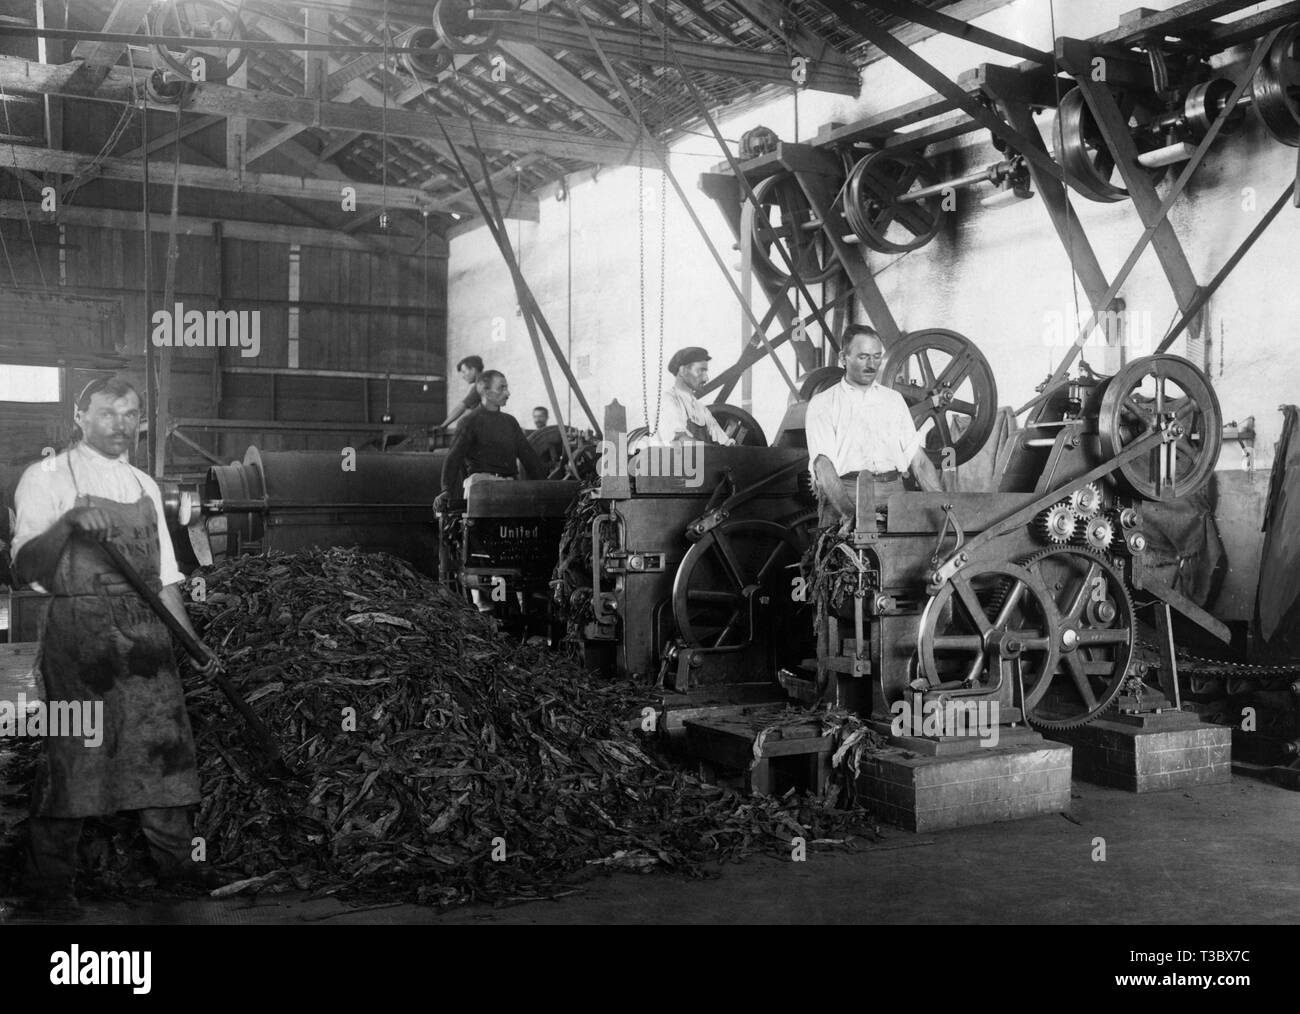 state tobacco agency, machines for cutting up tobacco, 1929 - Stock Image